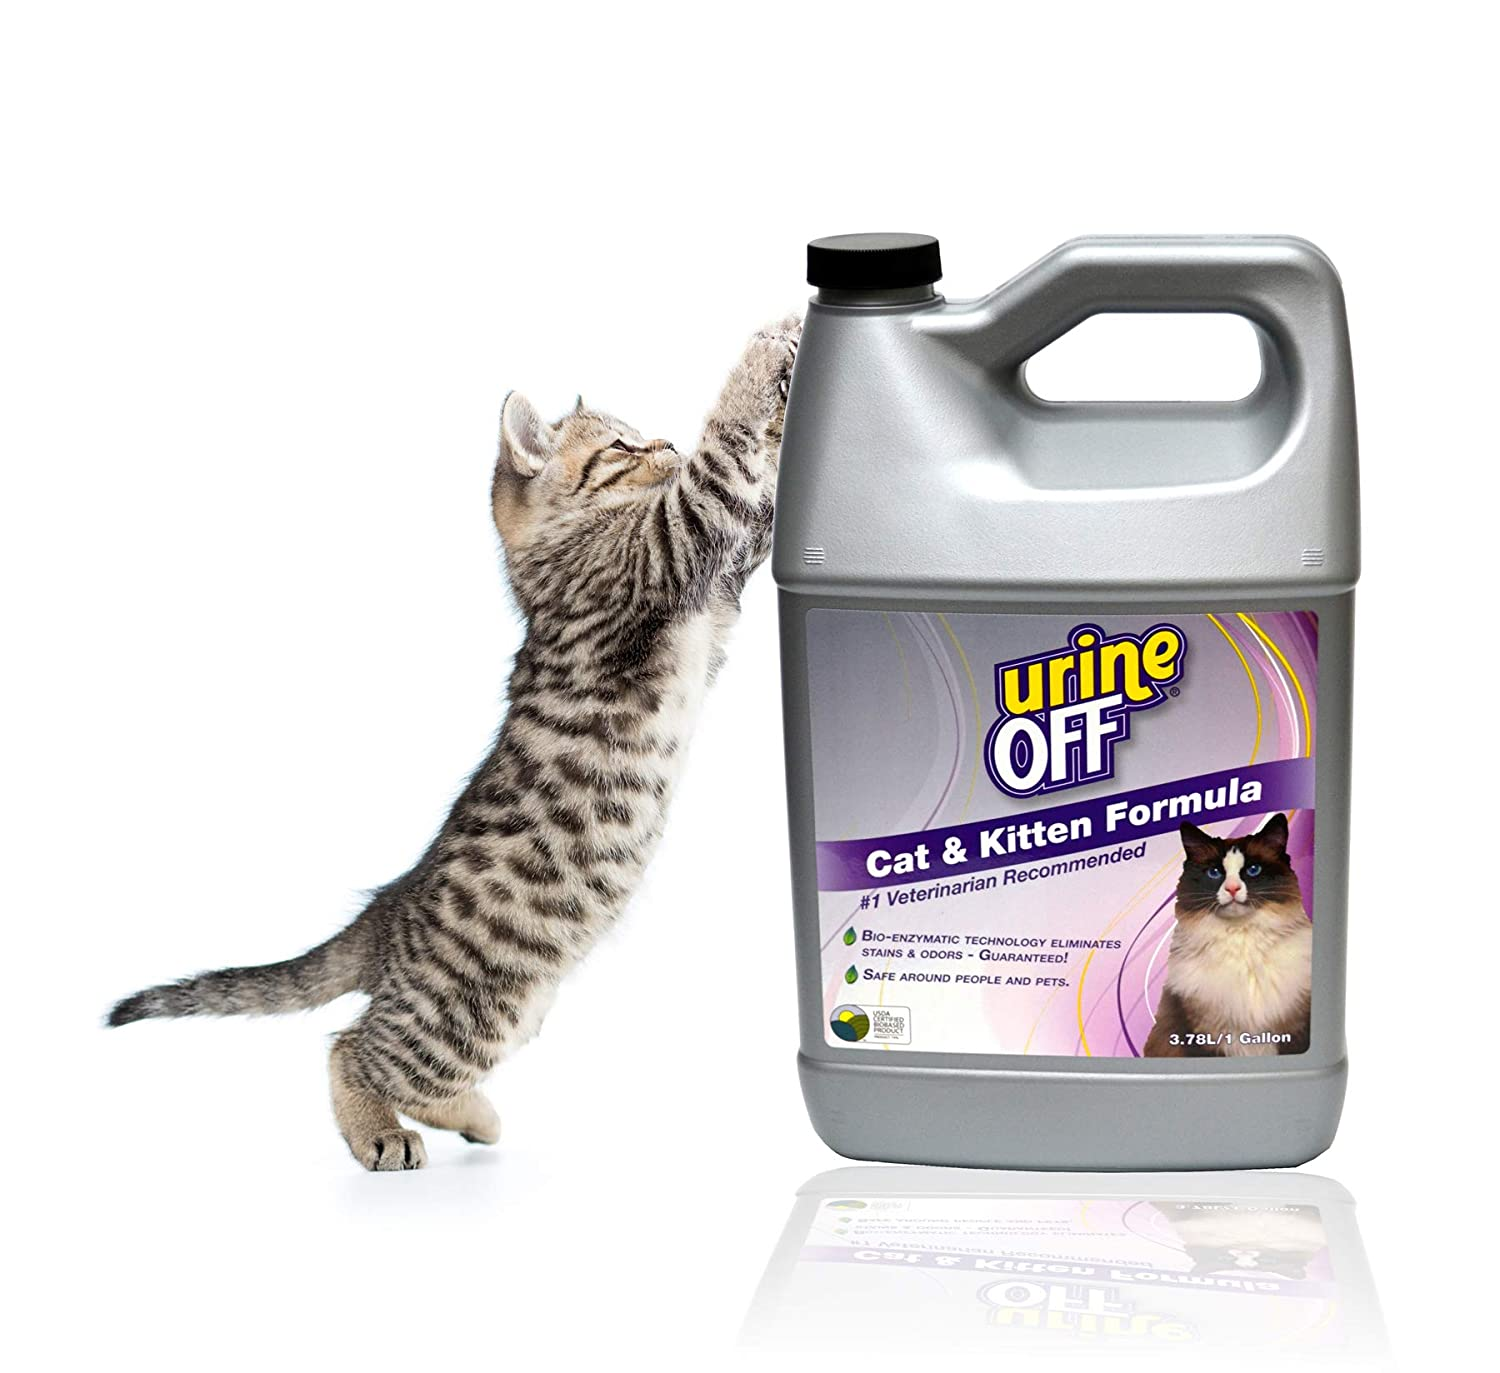 Amazon.com : Urine Off Cat & Kitten Odor and Stain Remover Gallon & Spray Combo : Pet Supplies